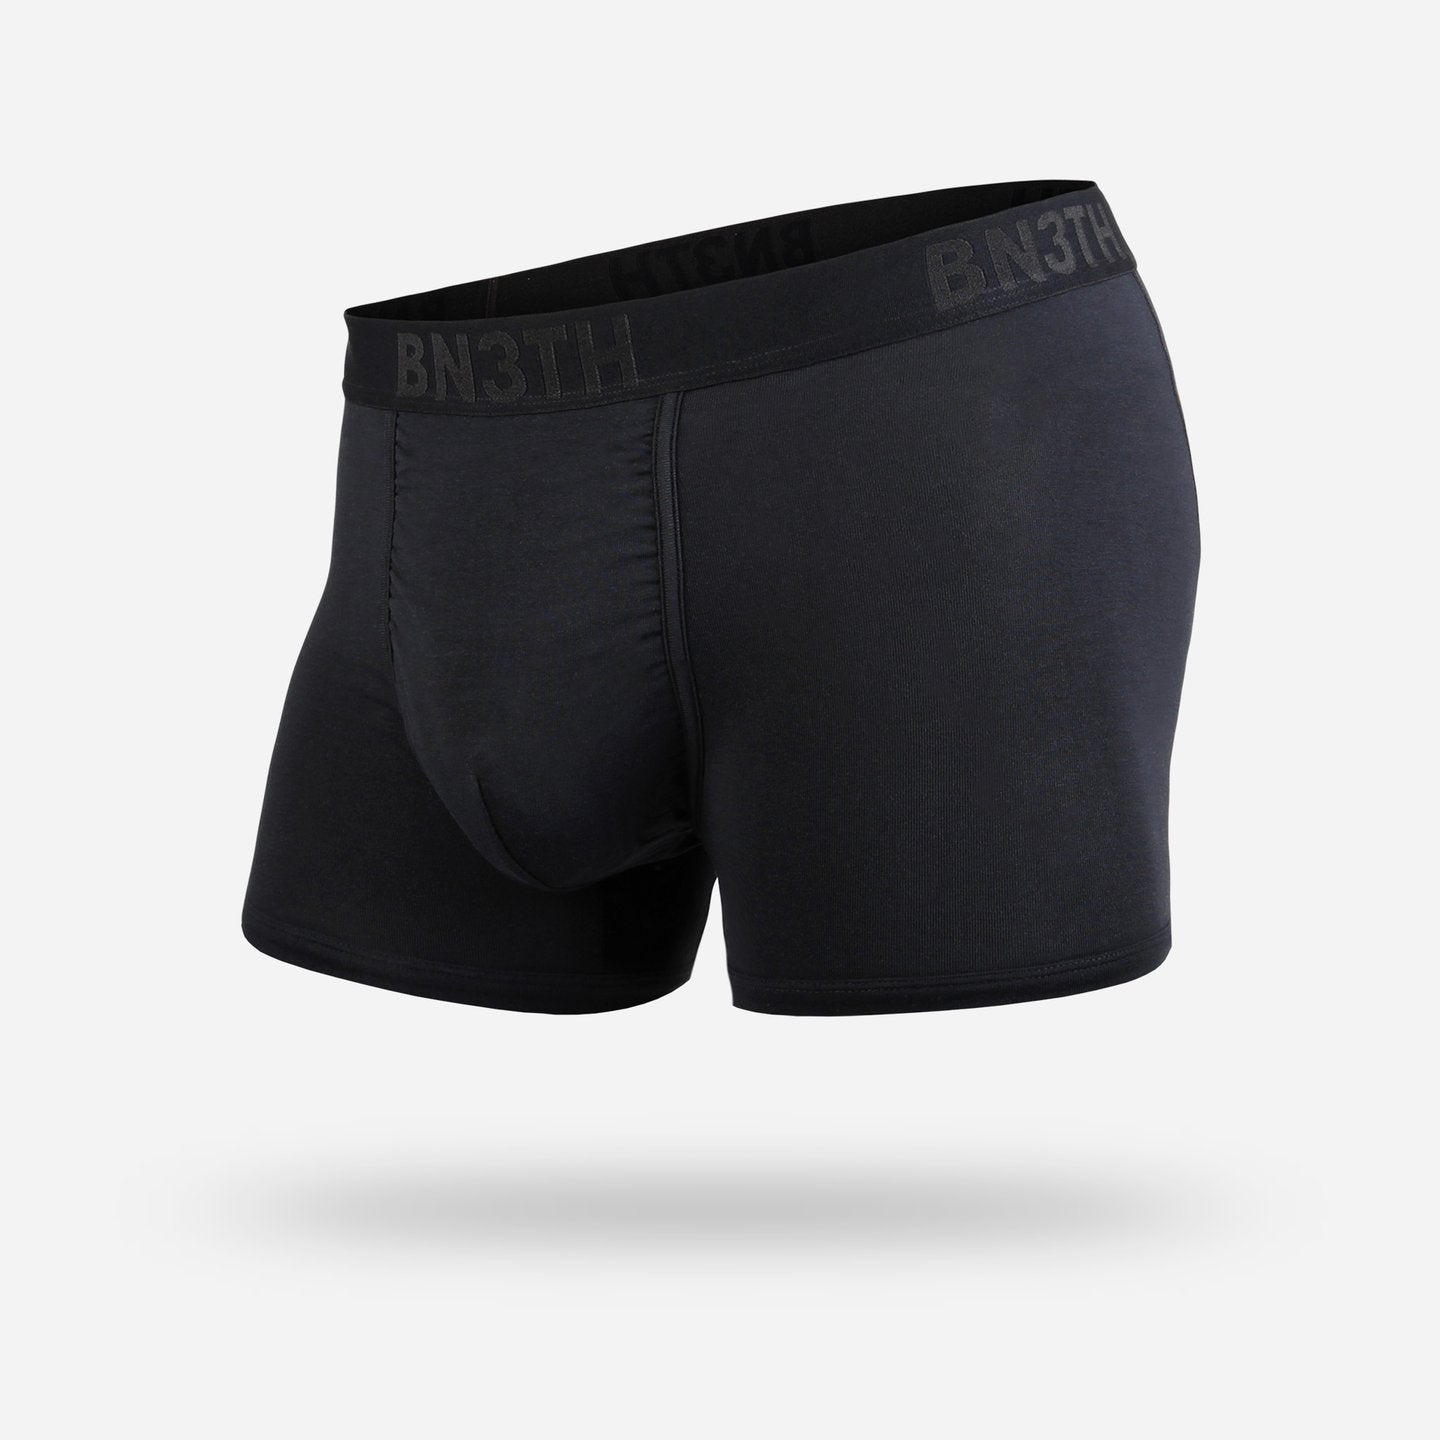 Boxer court Bn3th classic black